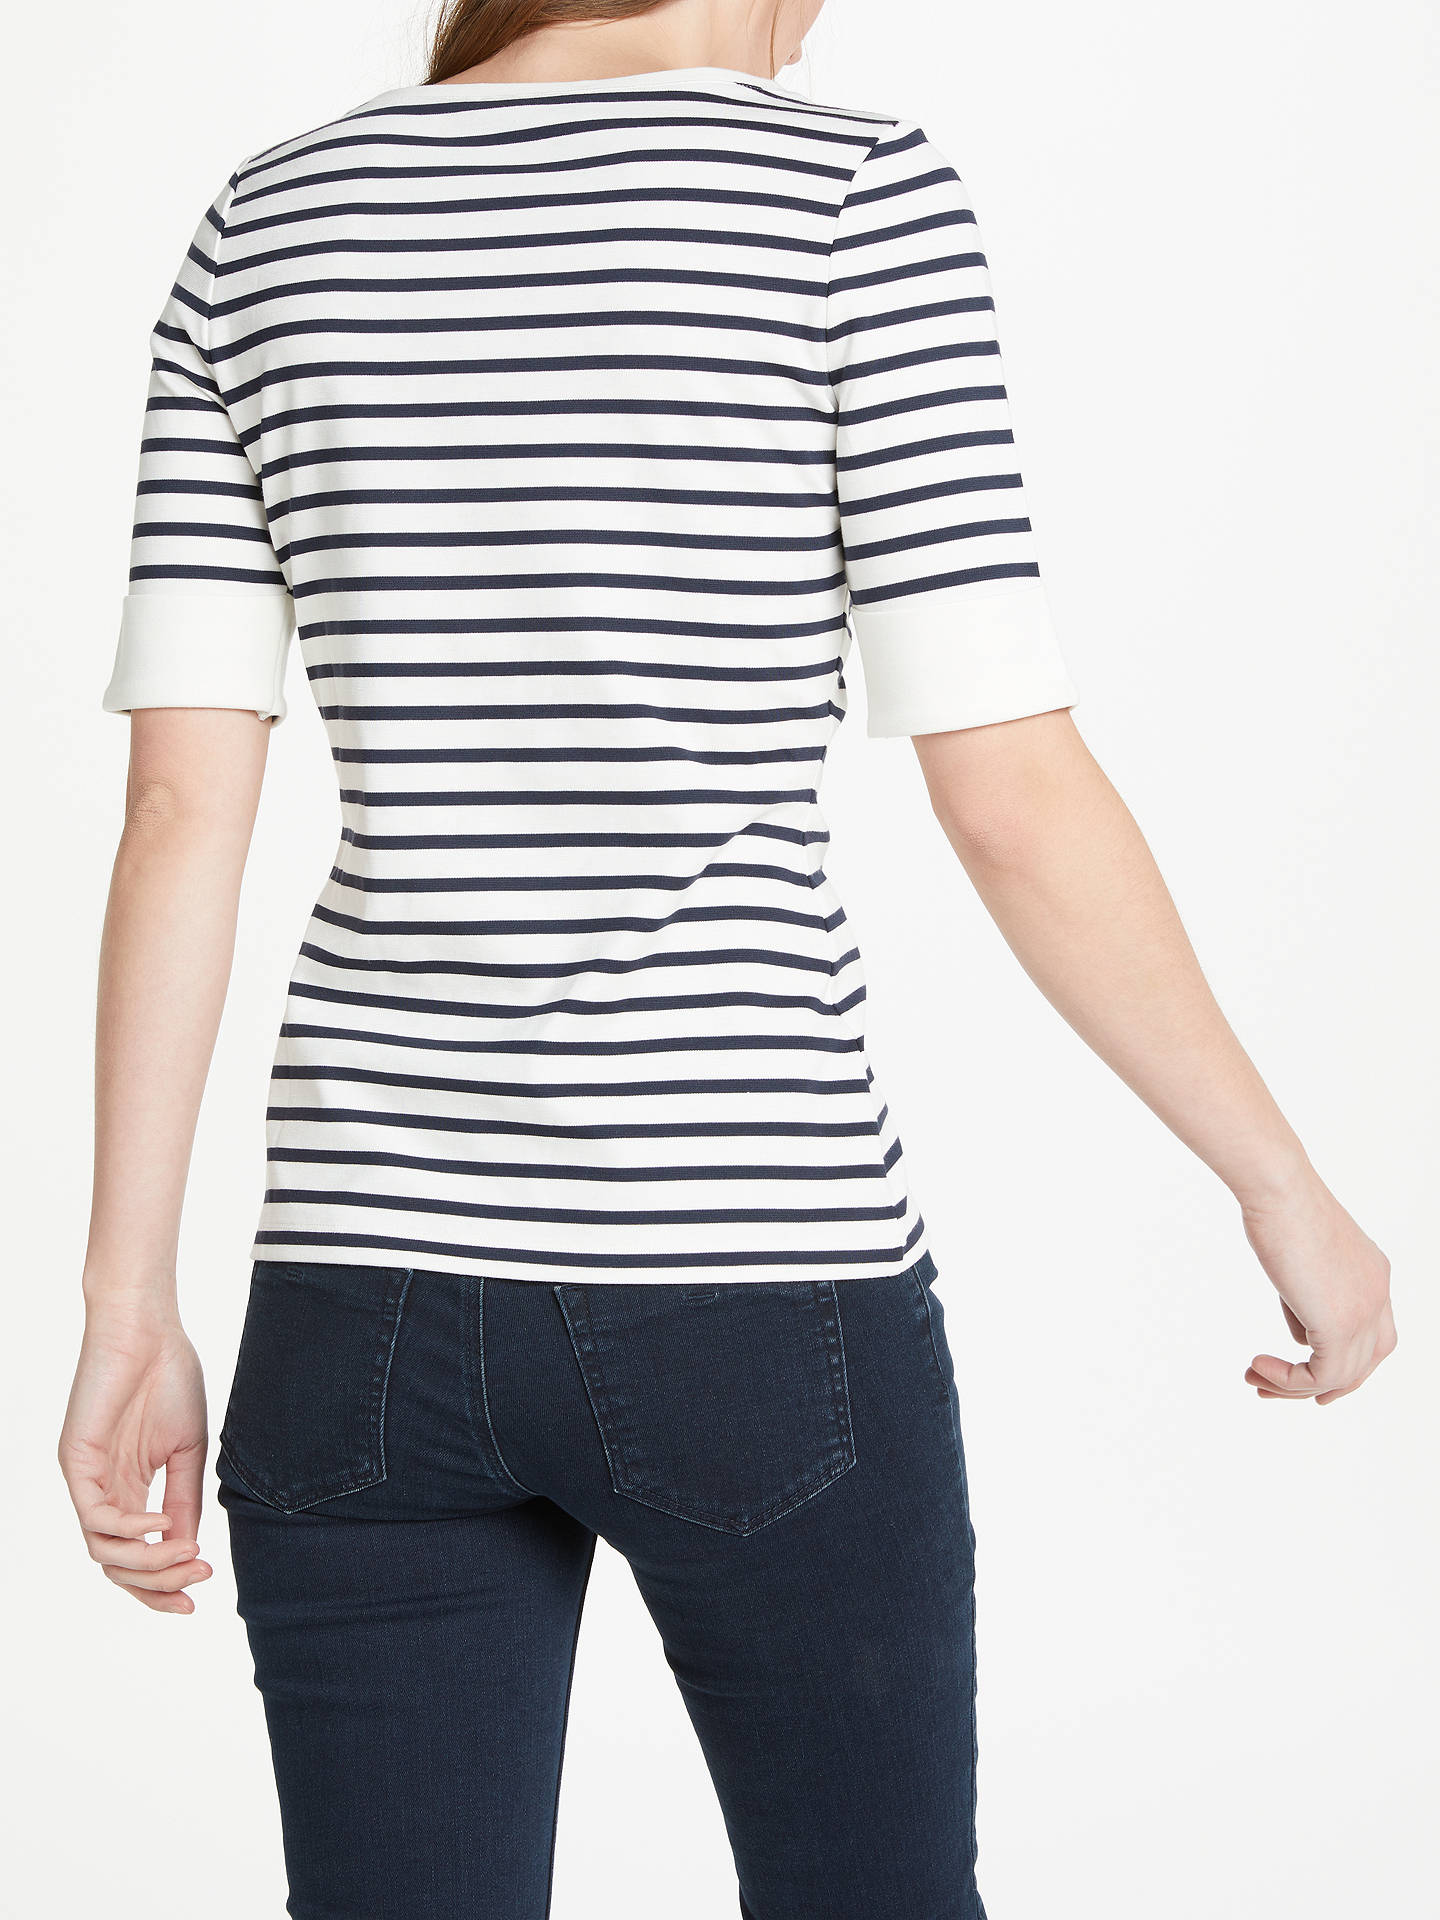 aef2f42d Buy Oui Striped T-Shirt, White/Blue, 8 Online at johnlewis.